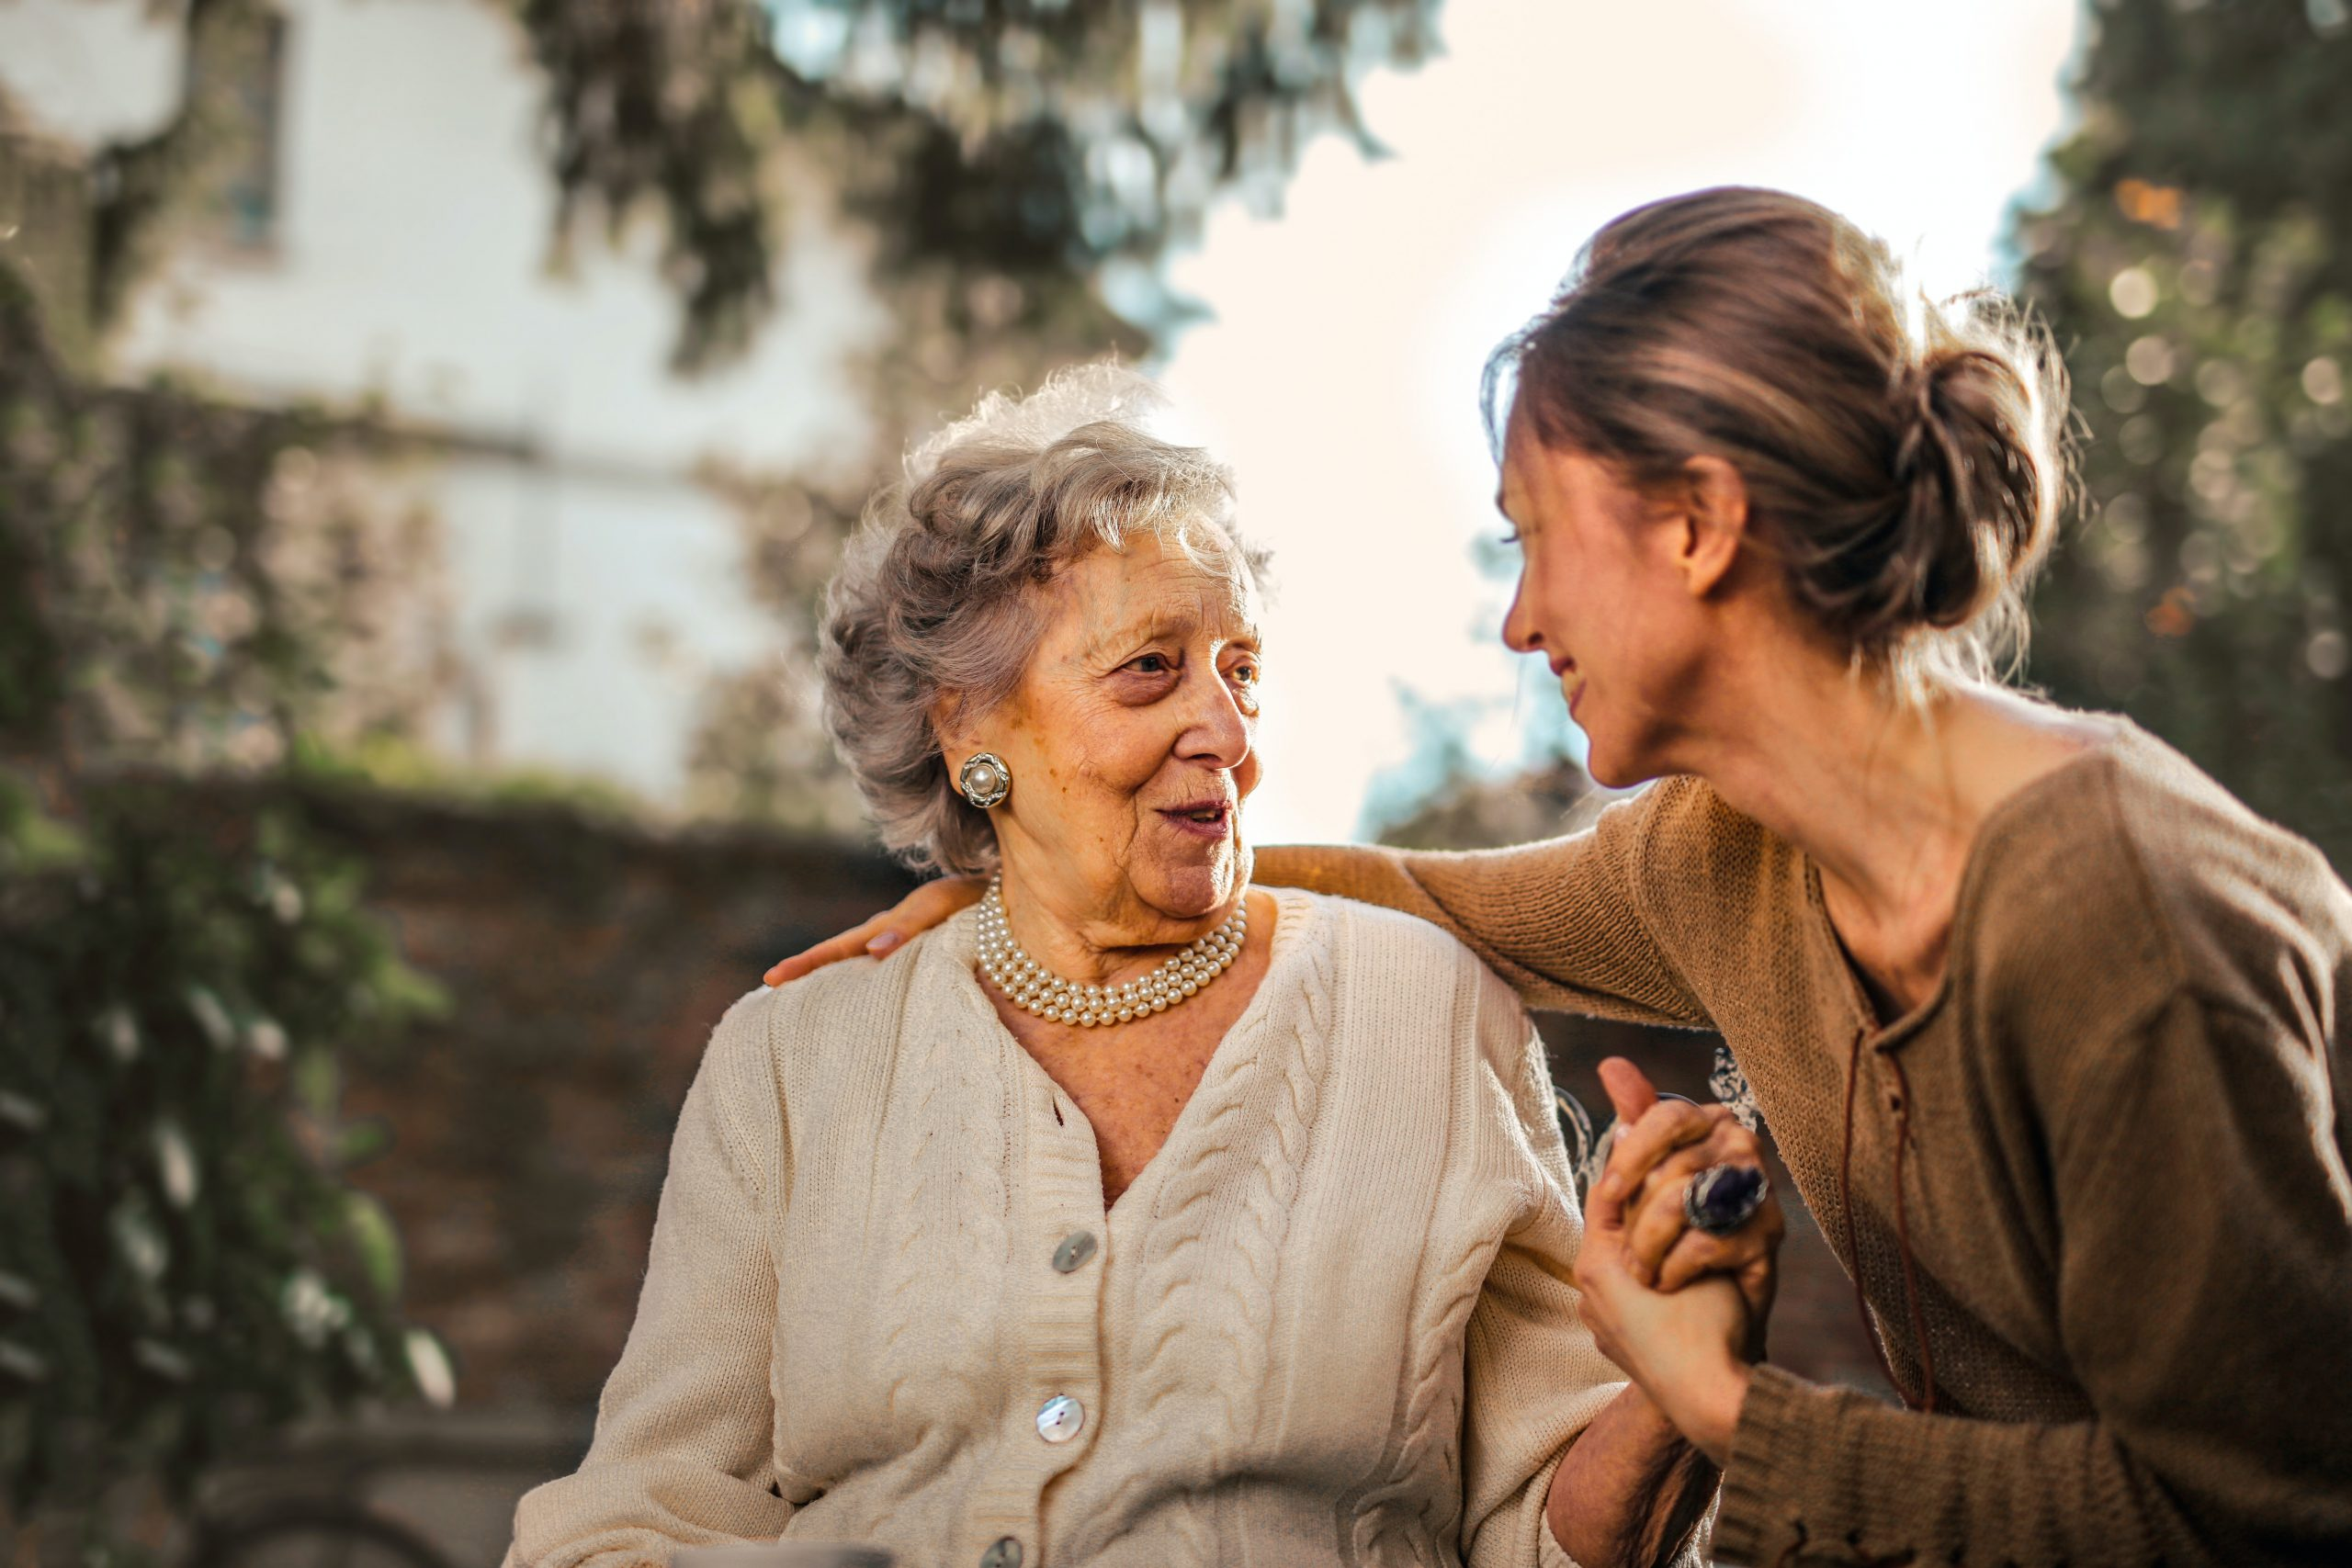 What to Expect When You Start Working as an Aged Care Worker